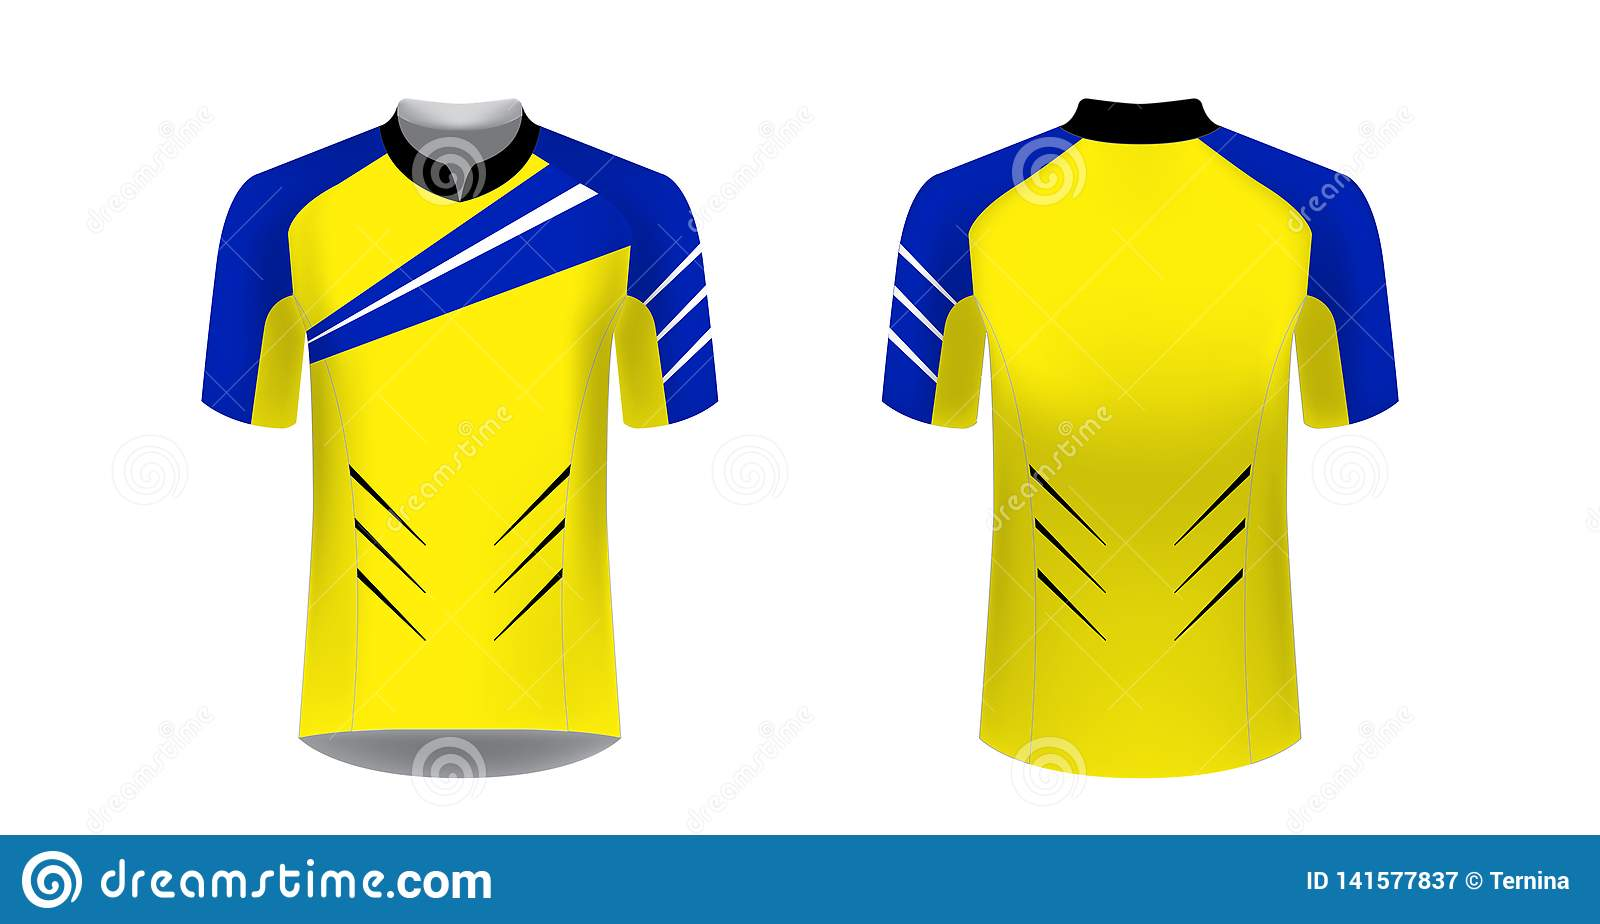 a0497f85a22 T-shirt sport design concept. Gaming casual clothing concept. Soccer  sportswear. Sublimation print. Tech pack. More similar stock illustrations